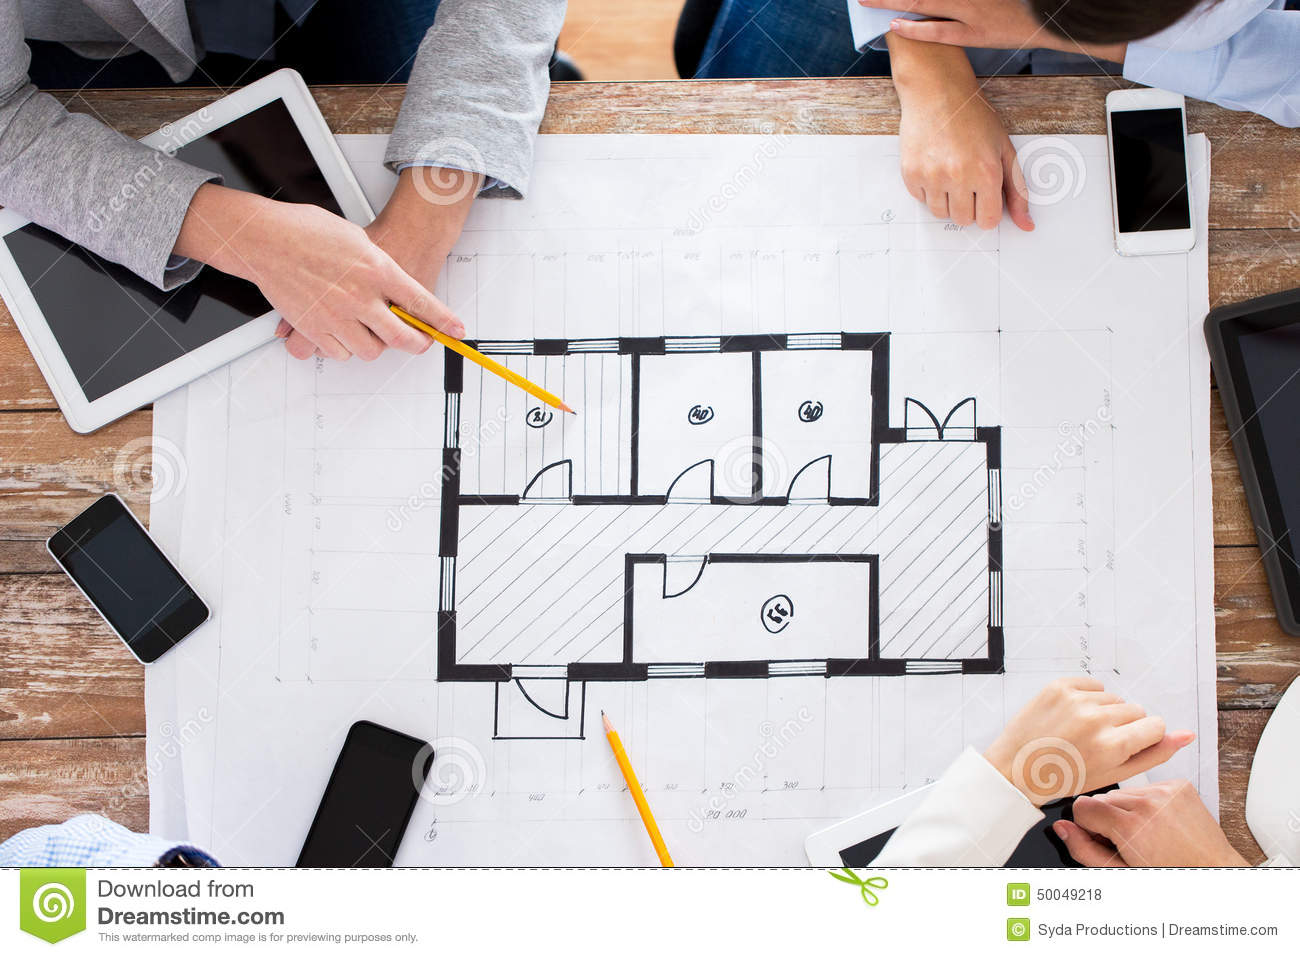 Business team with blueprint and gadgets stock photo image of download business team with blueprint and gadgets stock photo image of application outline malvernweather Gallery